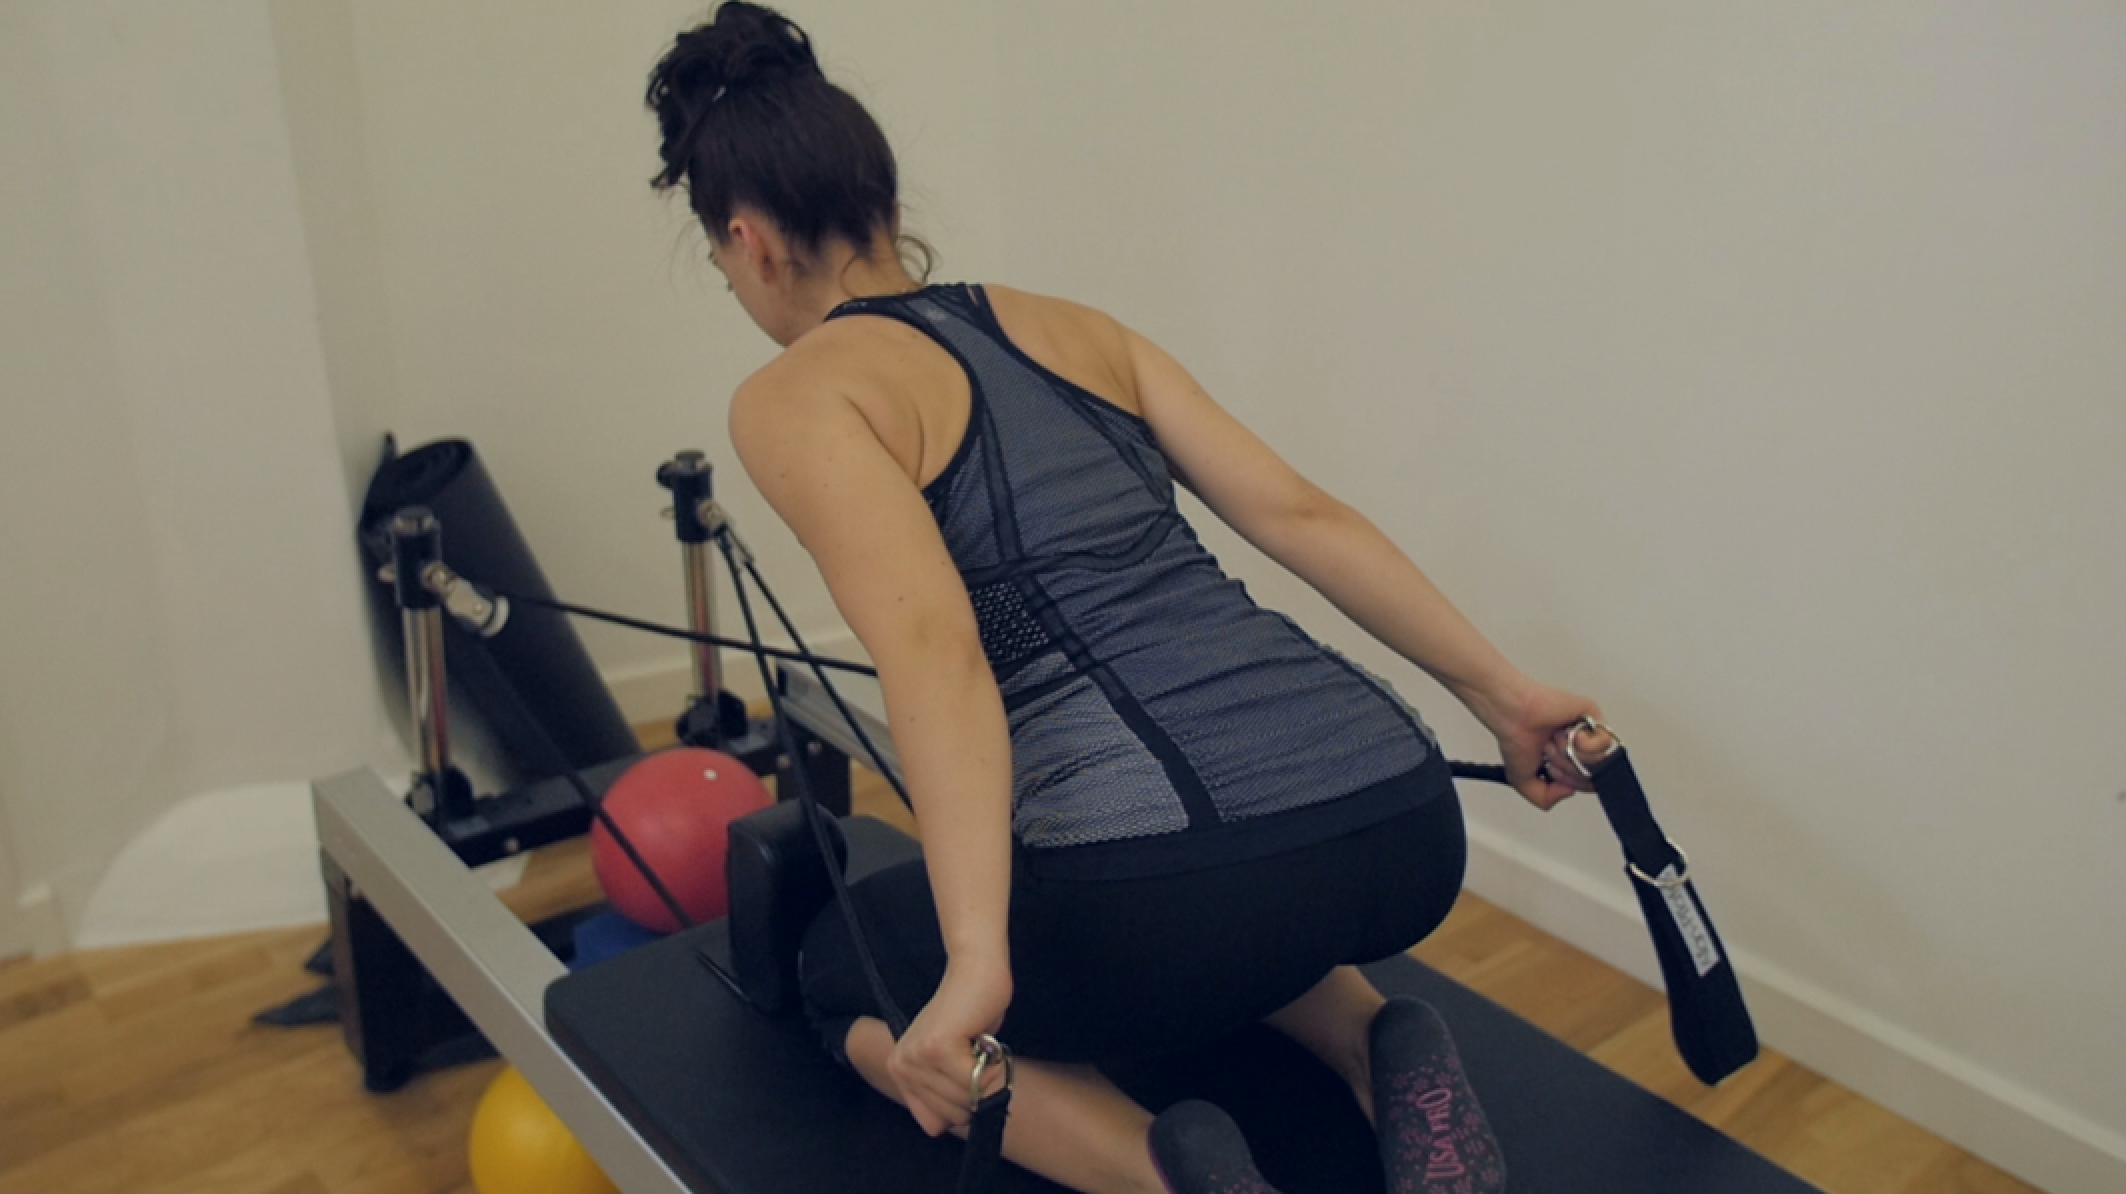 Why Reformer Pilates is good for your body?